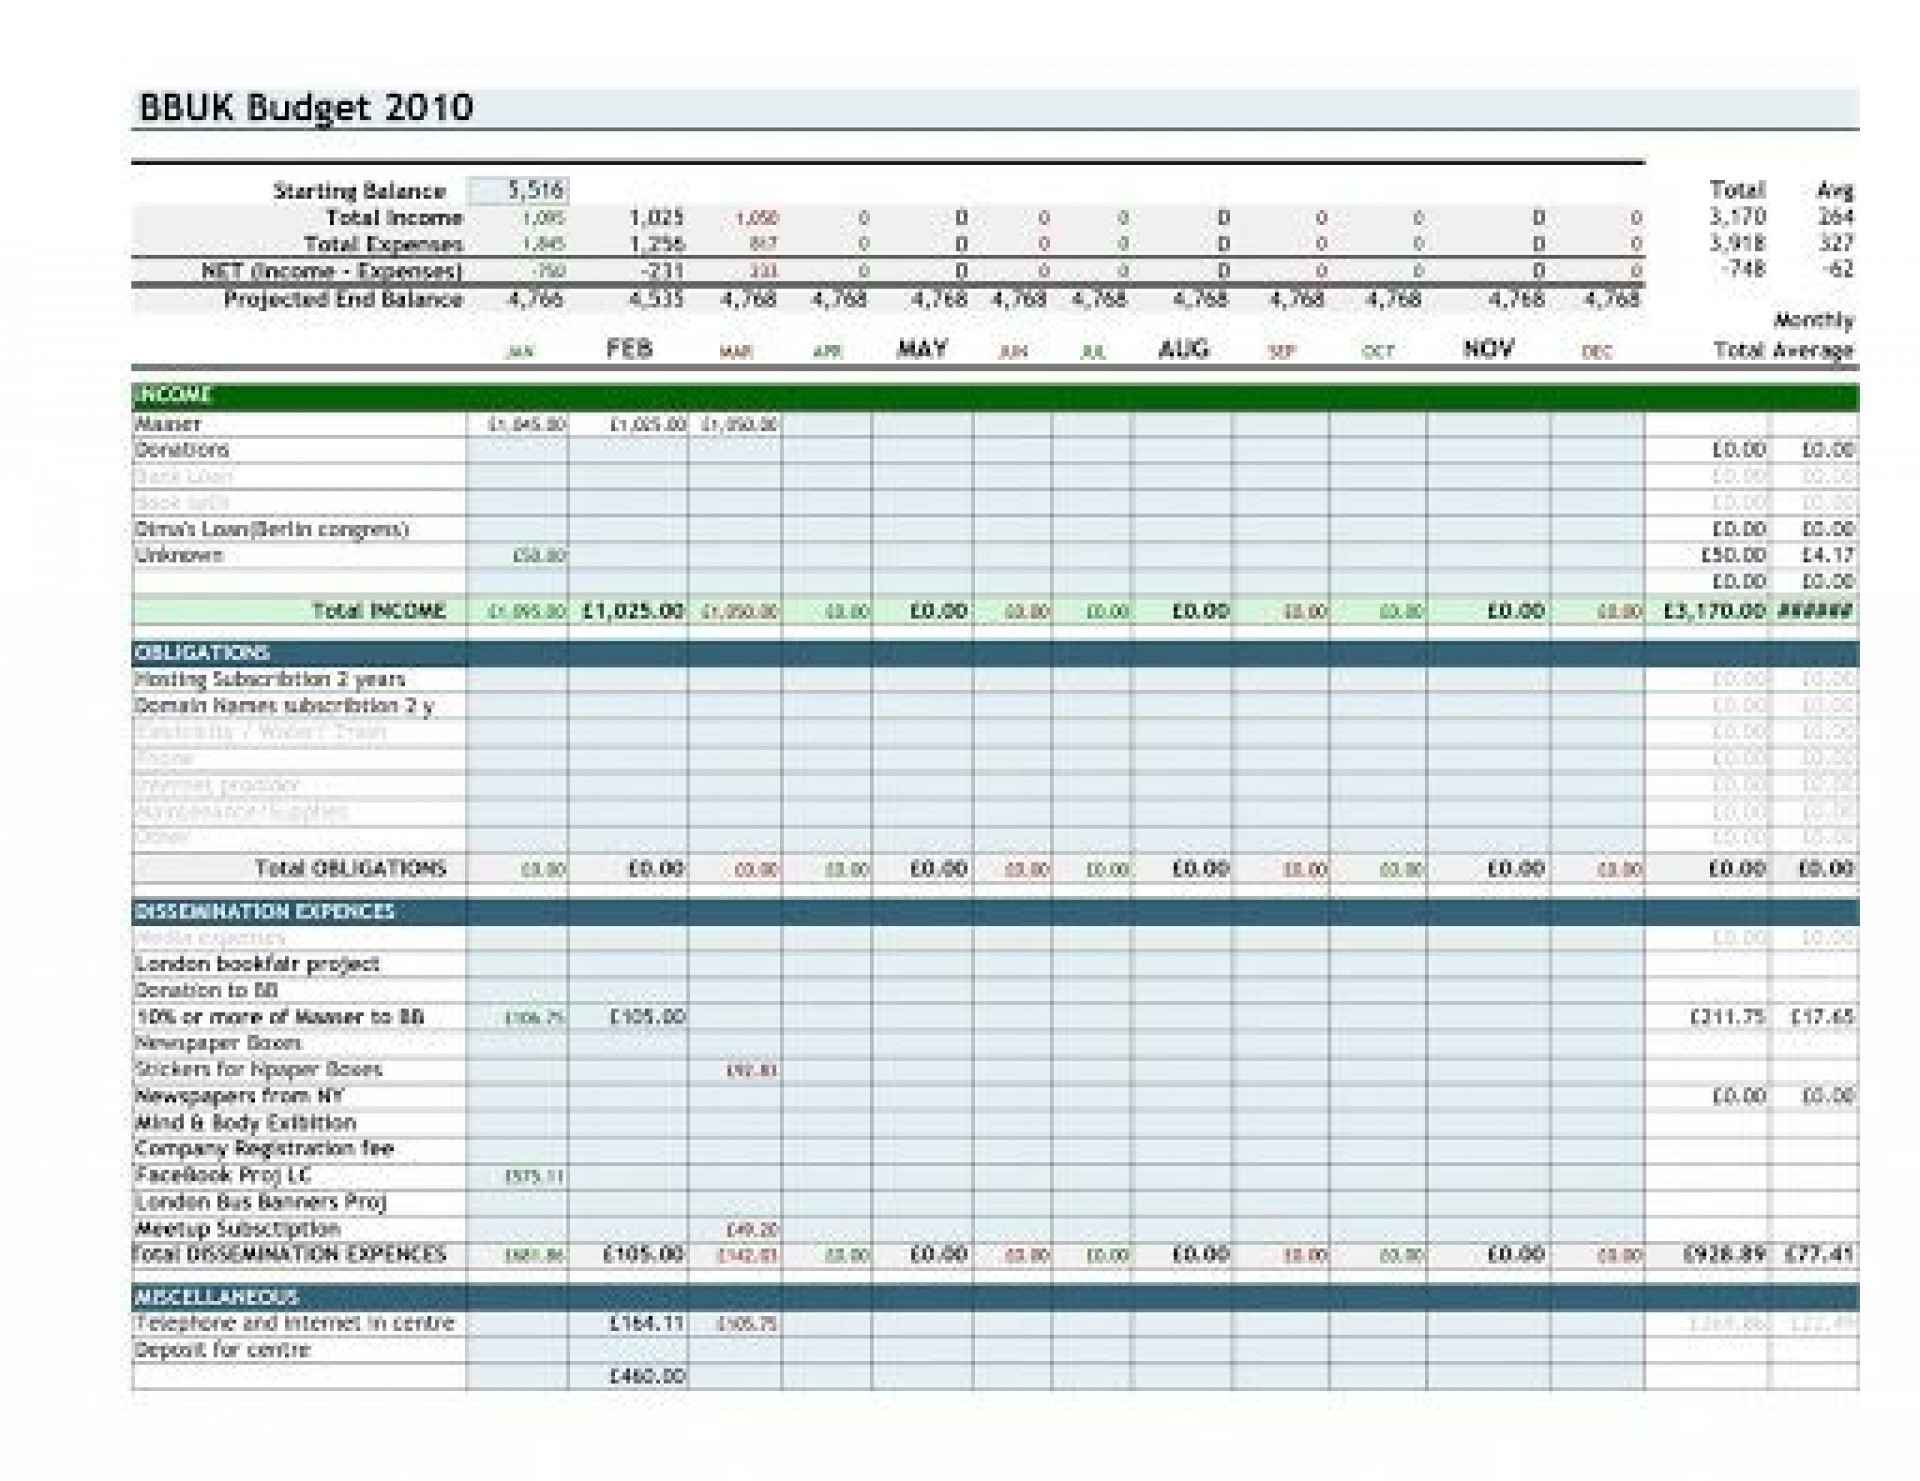 007 Stunning Personal Finance Template Excel High Resolution  Spending Expense Free Financial Planning India1920